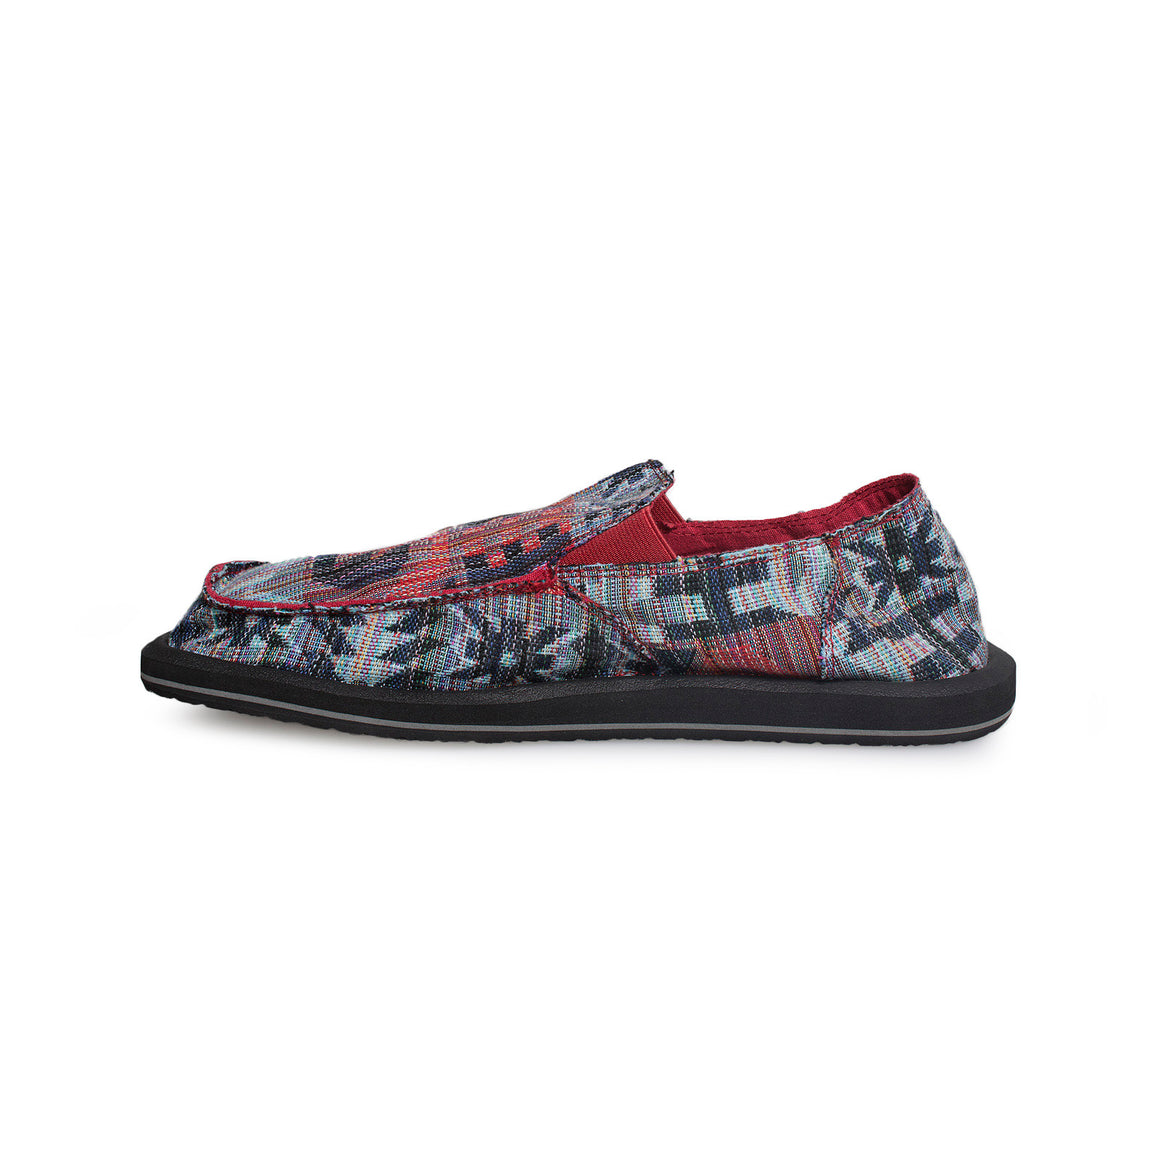 SANUK Donny Red / Sky Shoes - Men's